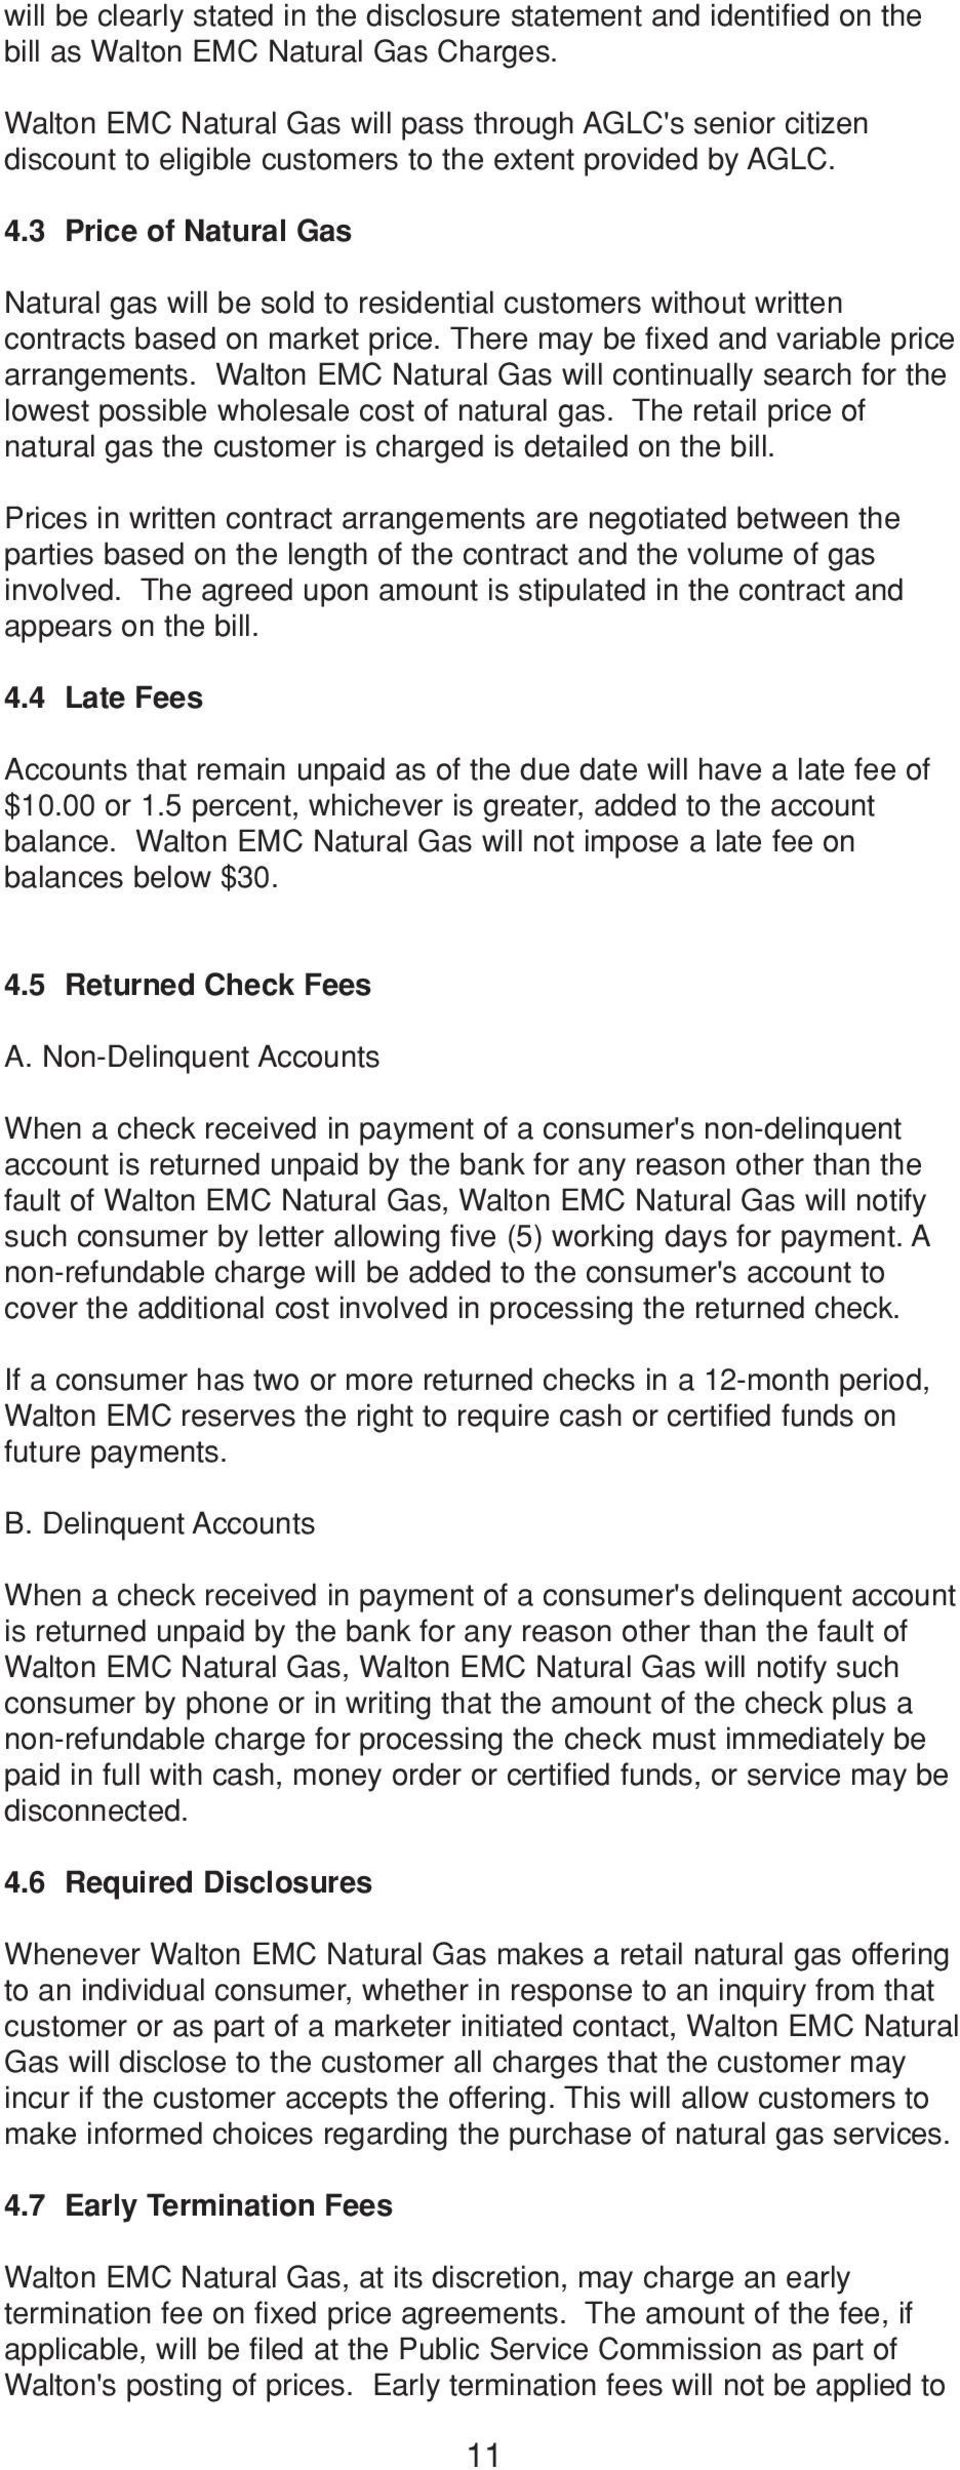 3 Price of Natural Gas Natural gas will be sold to residential customers without written contracts based on market price. There may be fixed and variable price arrangements.